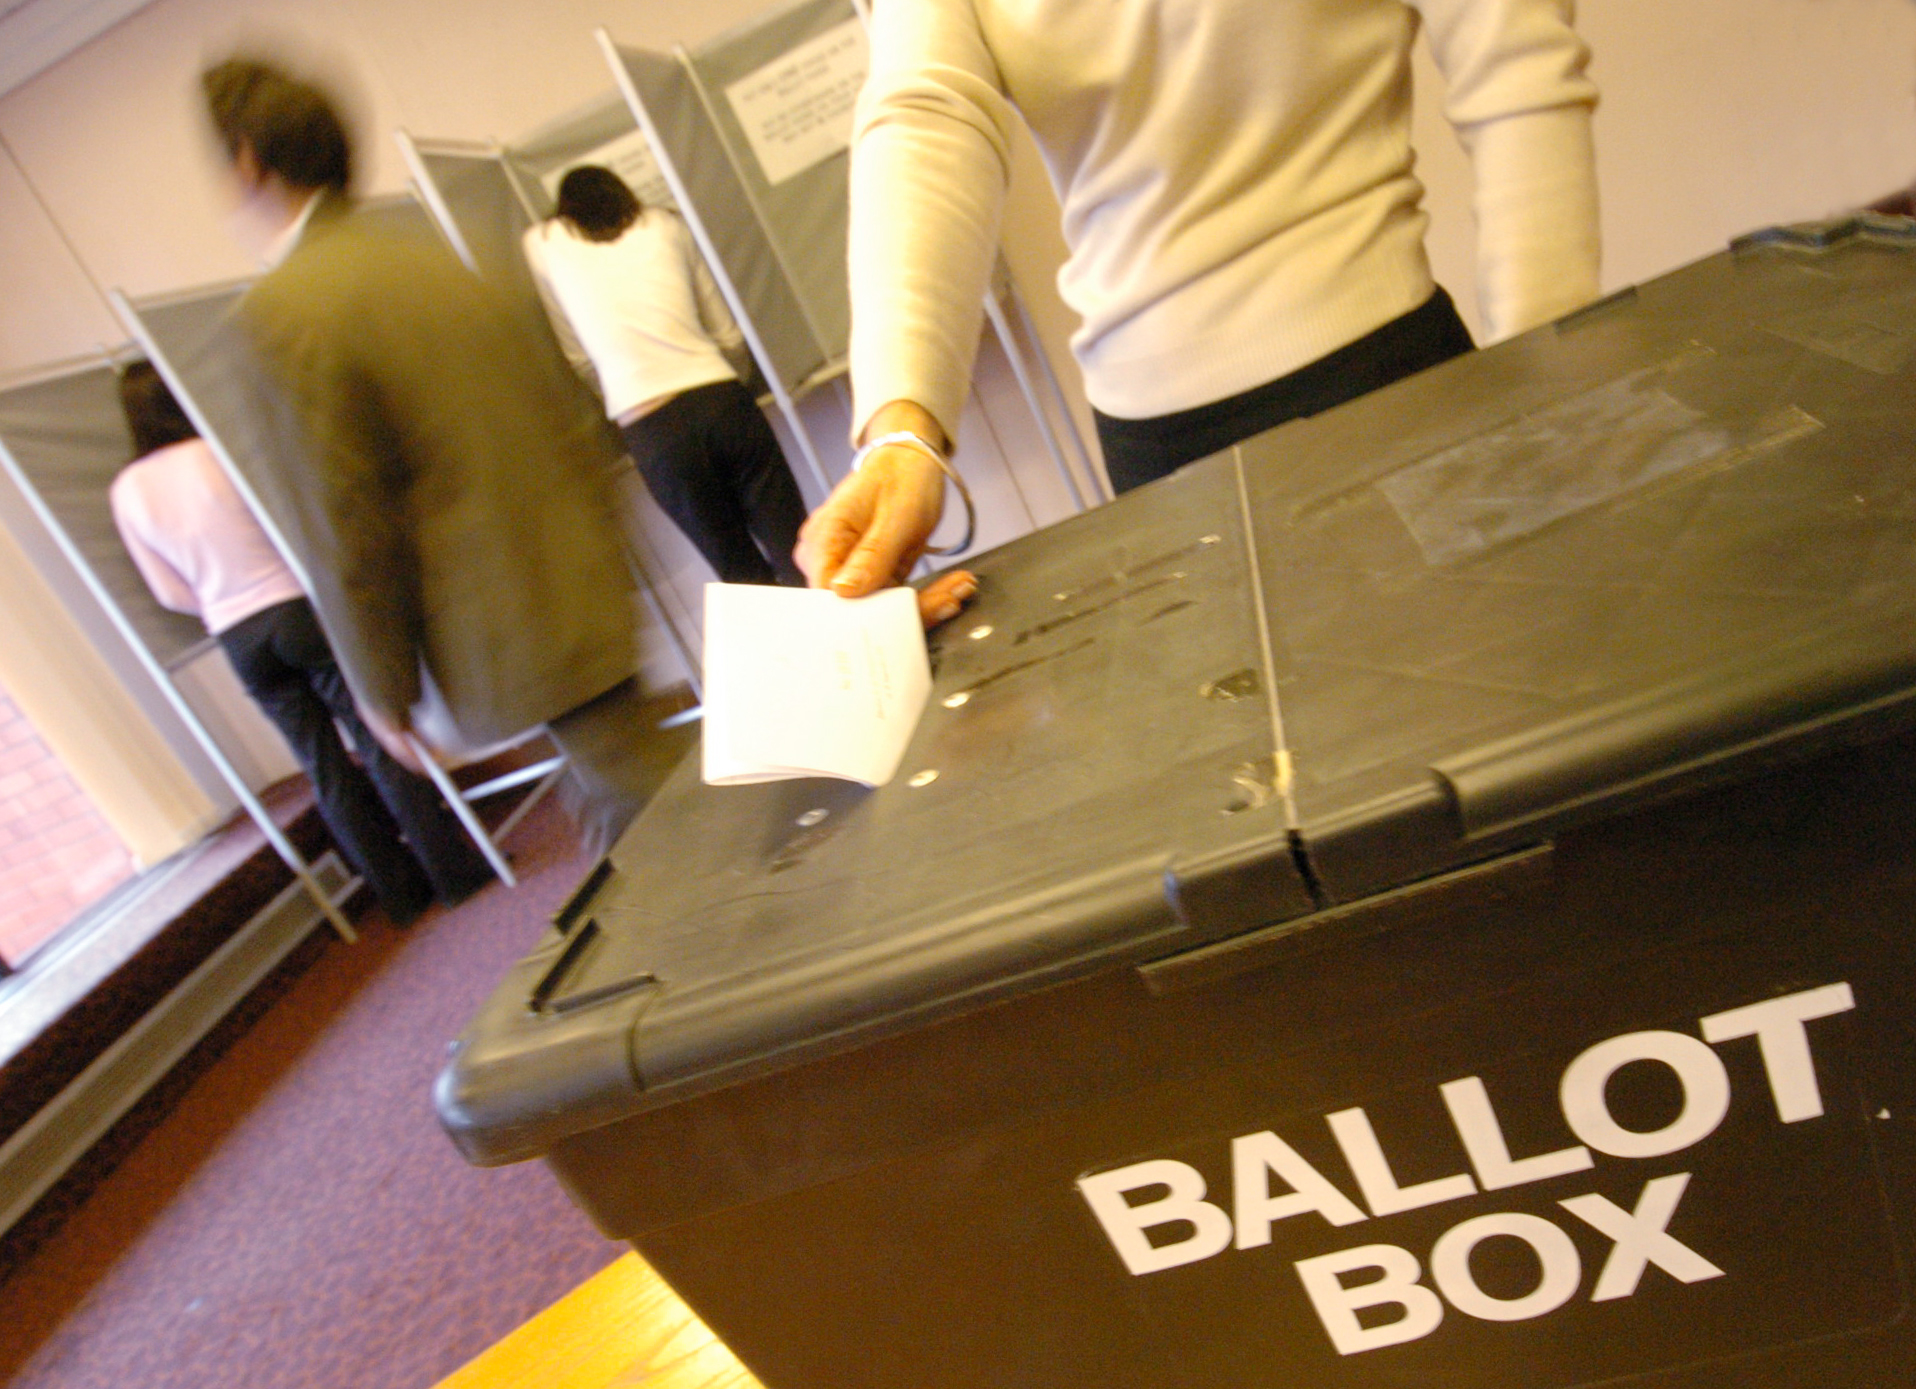 Woman placing vote in ballot box at election